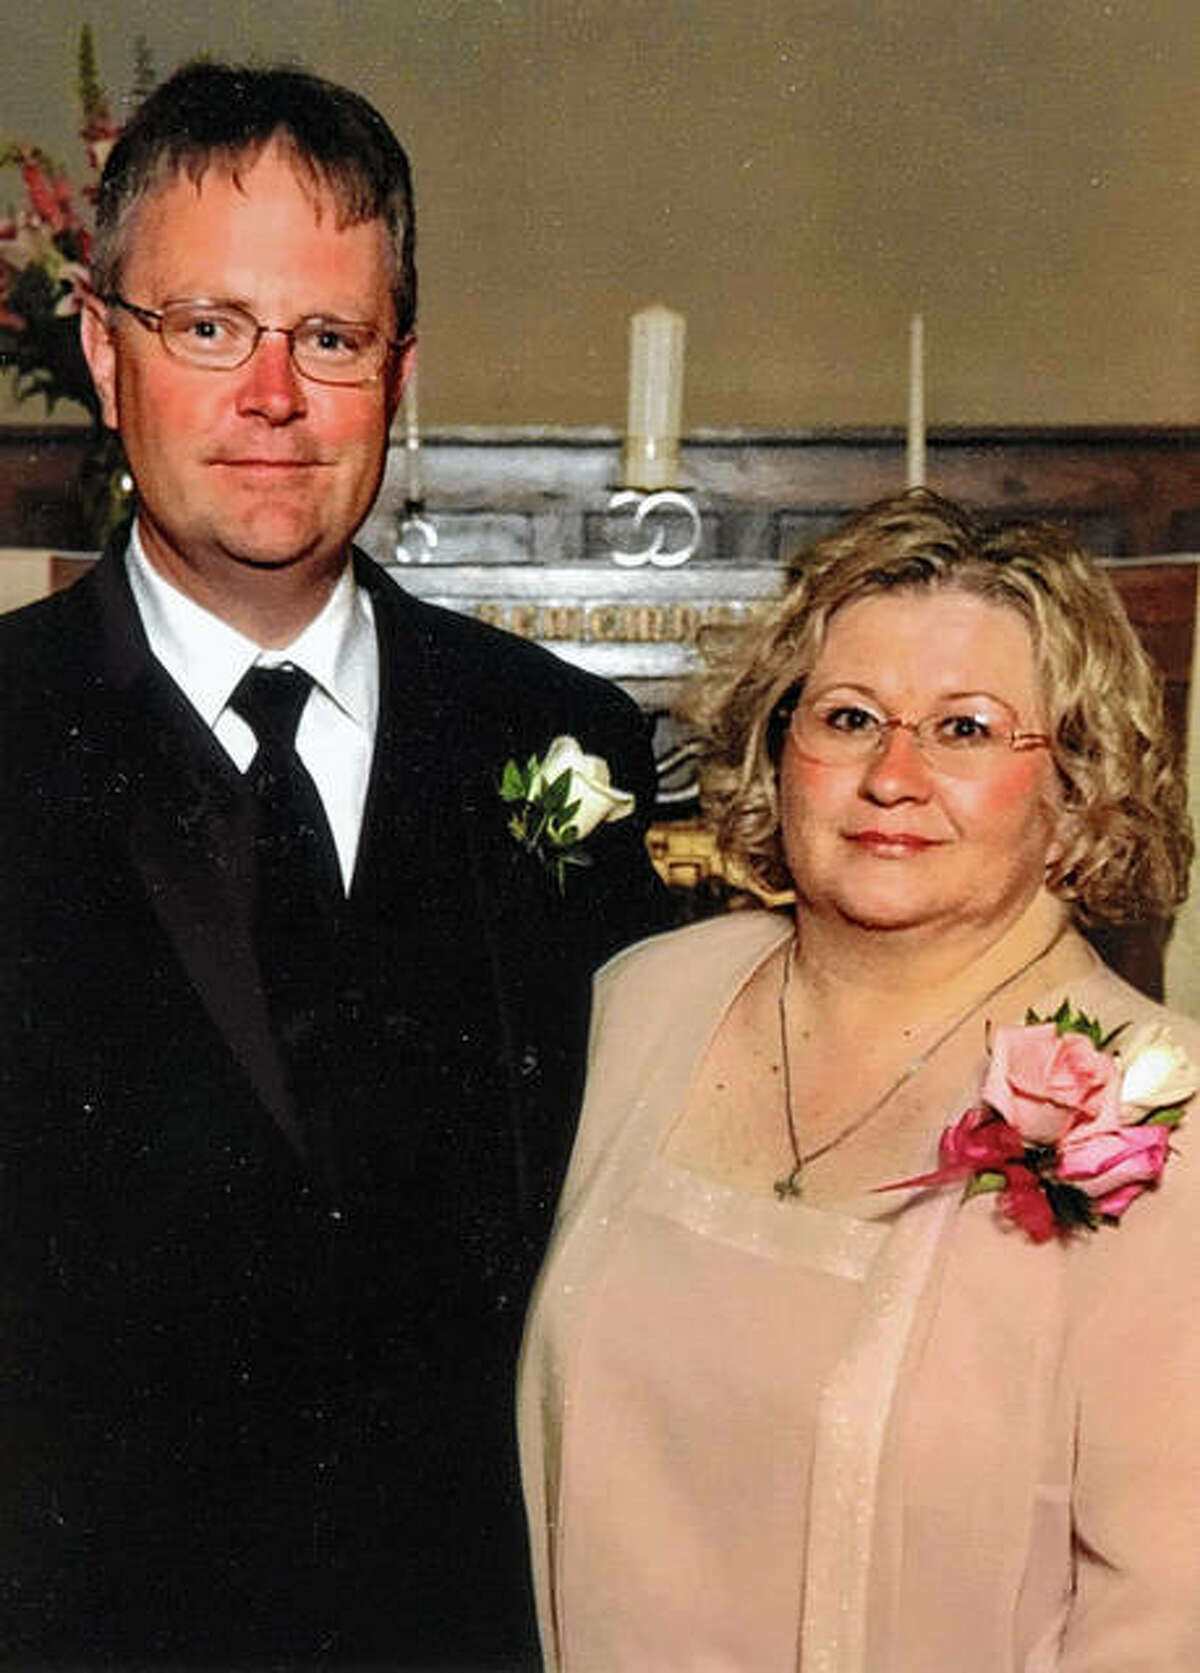 David and Kathy Blanchette attend a wedding in August 2006. By then, their lives had been forever changed by a 2002 accident that almost killed Kathy the day it happened.